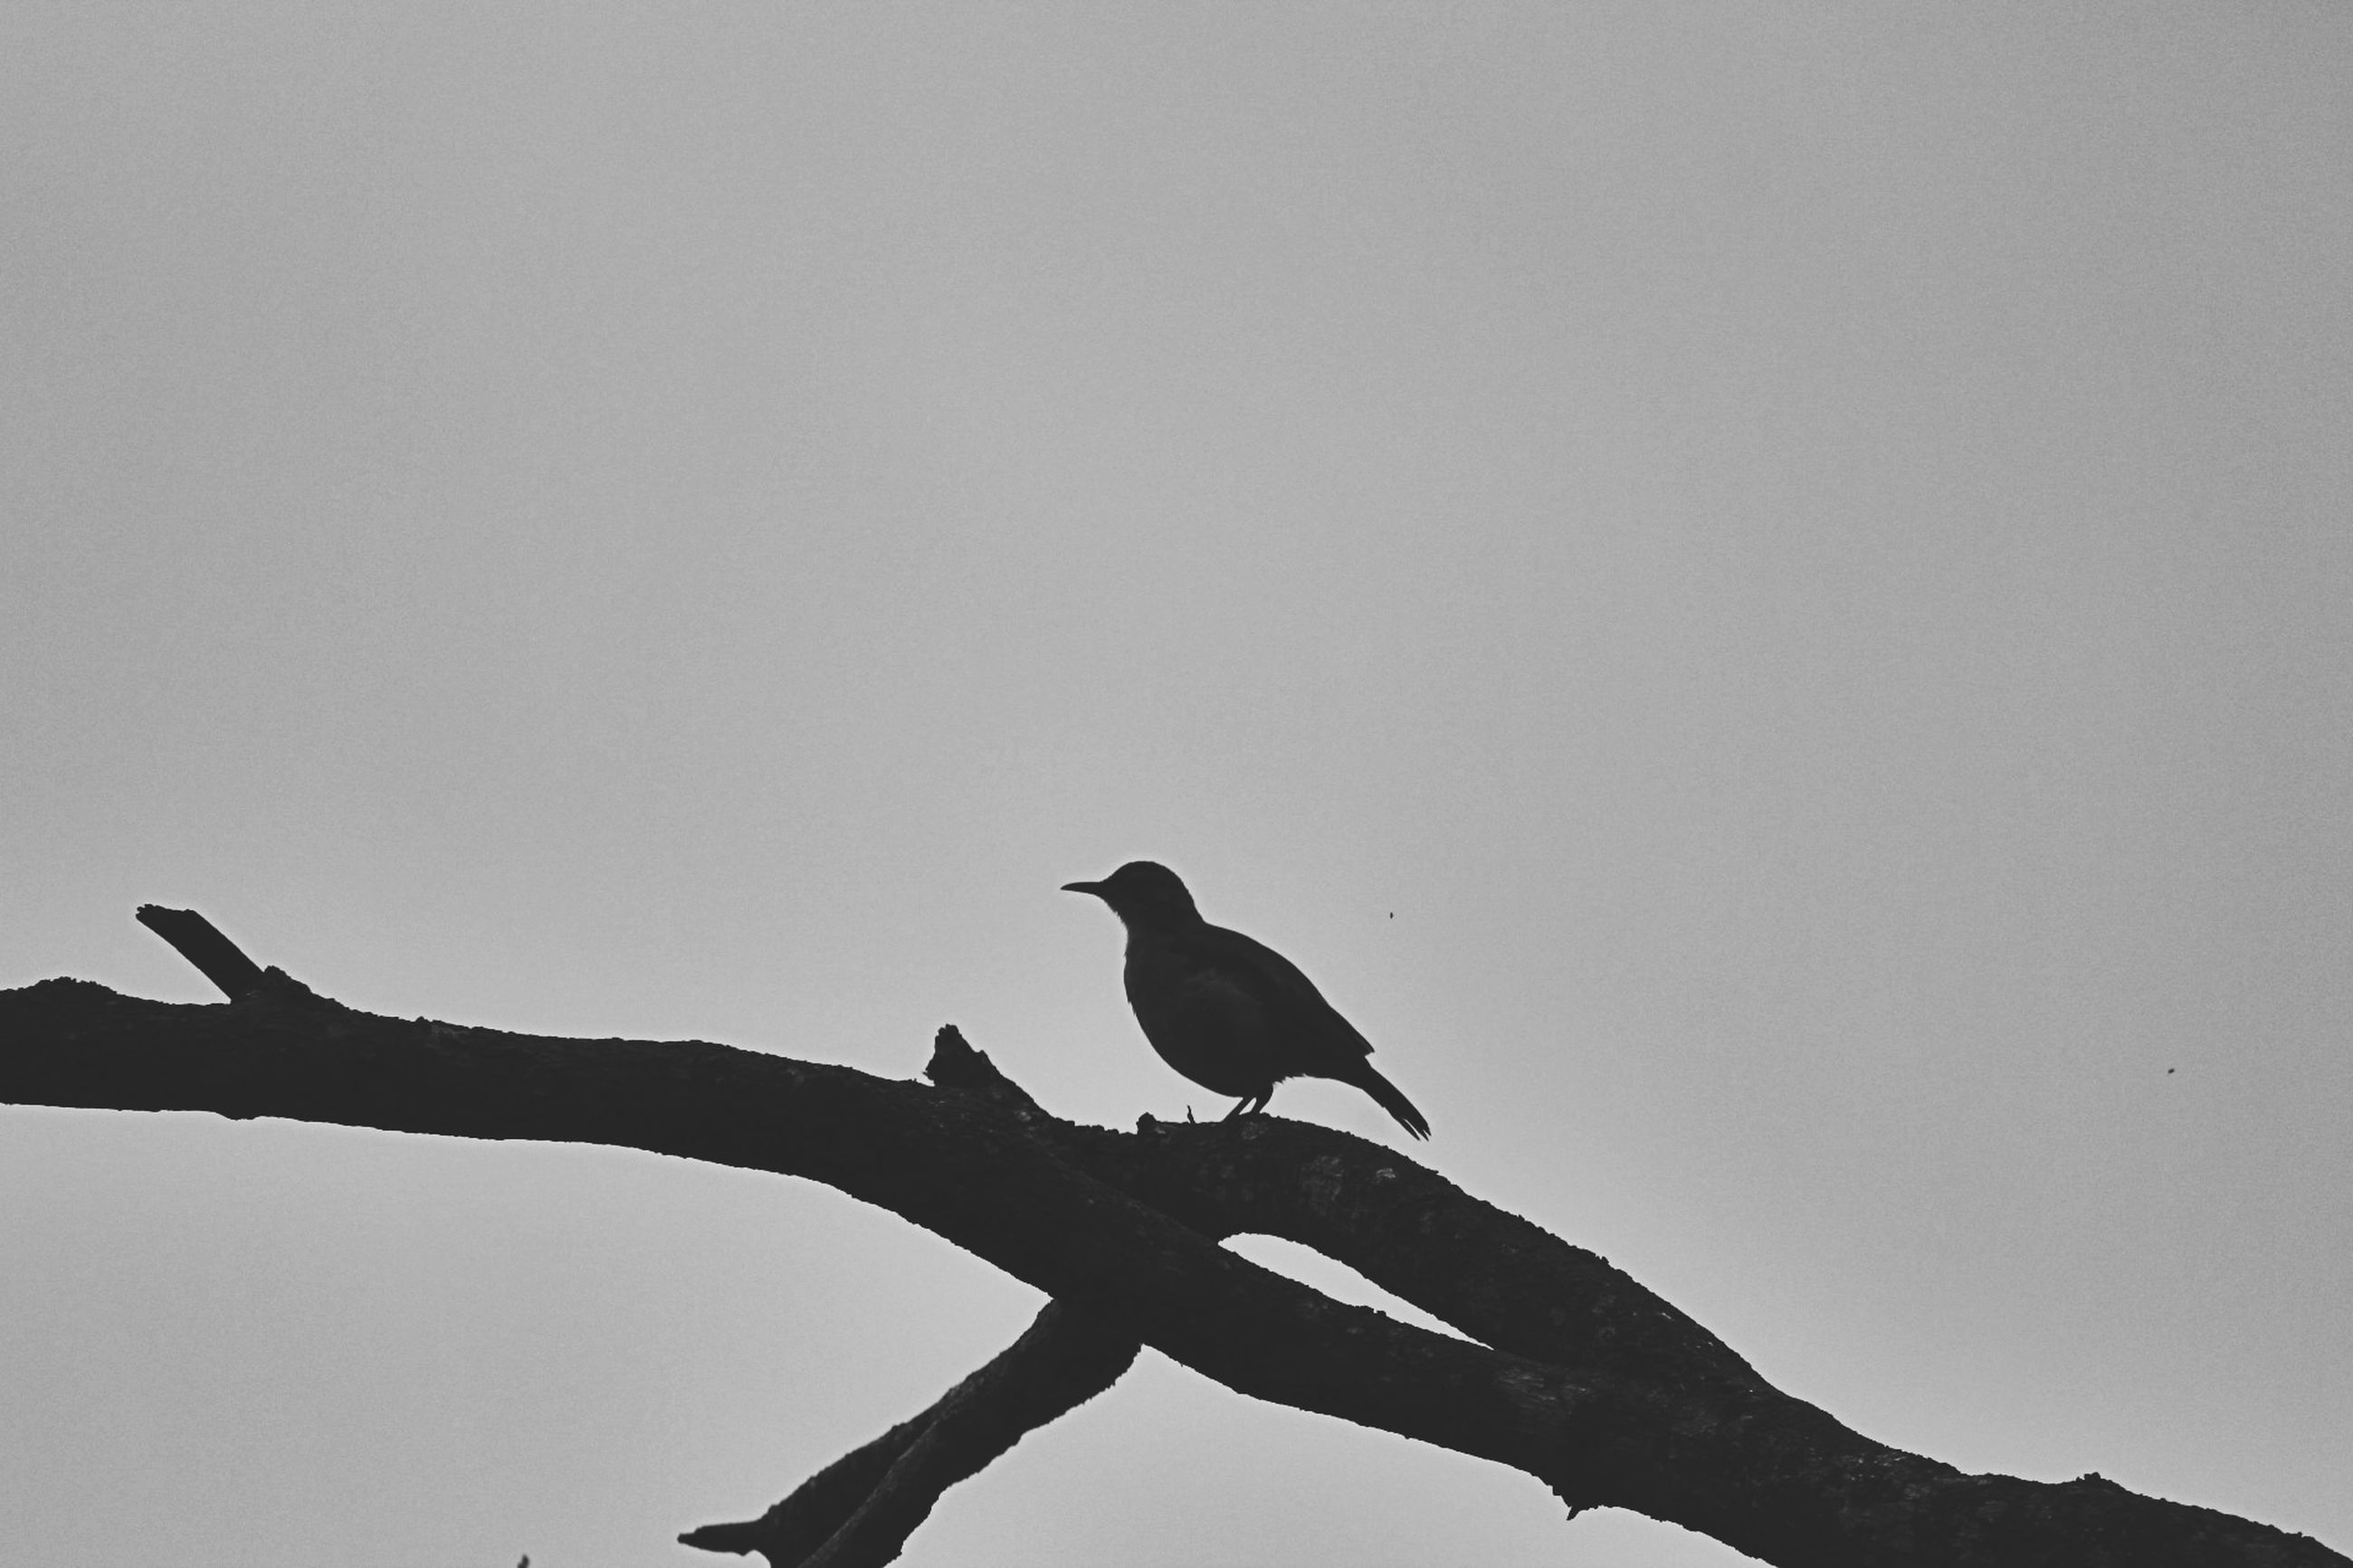 bird, animal wildlife, animals in the wild, vertebrate, animal, animal themes, perching, sky, one animal, copy space, clear sky, low angle view, branch, no people, nature, tree, silhouette, day, outdoors, plant